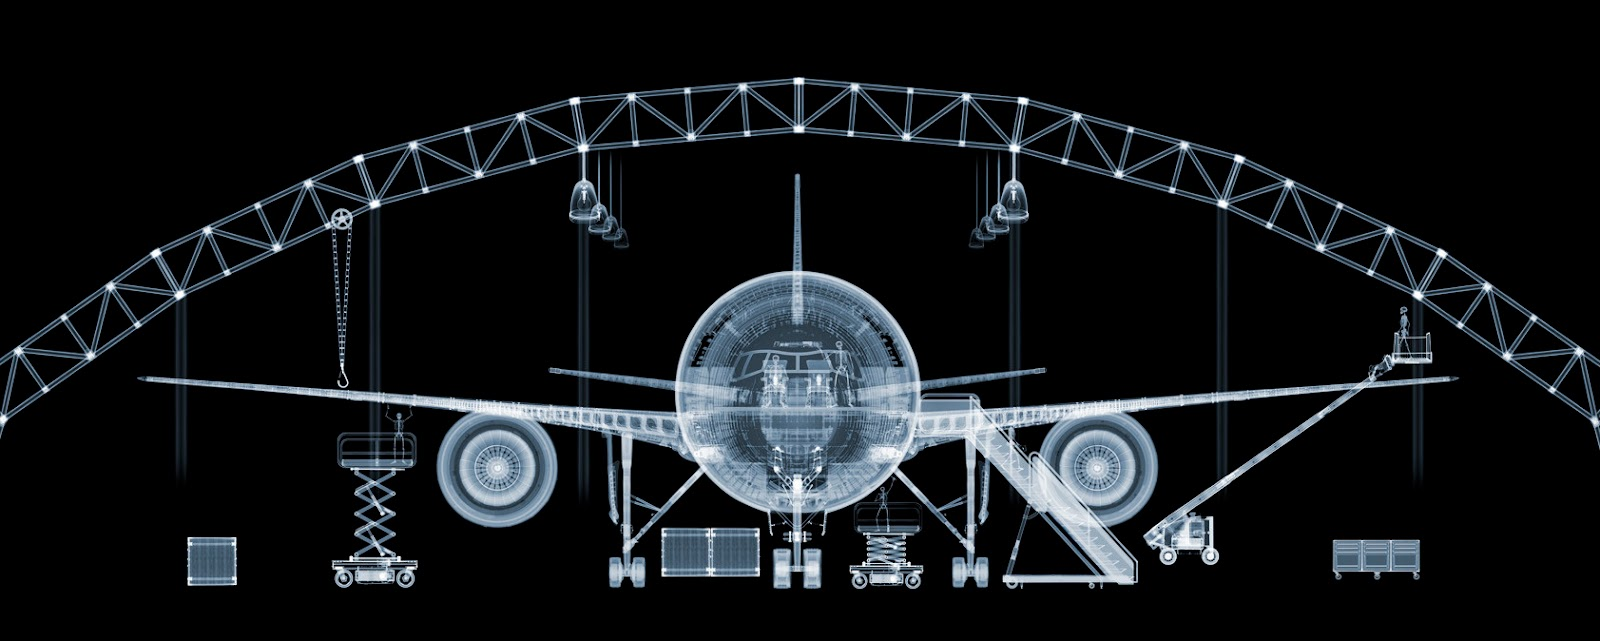 05-Plane-Nick-Veasey-X-ray-Images-Mechanical-Musical-www-designstack-co